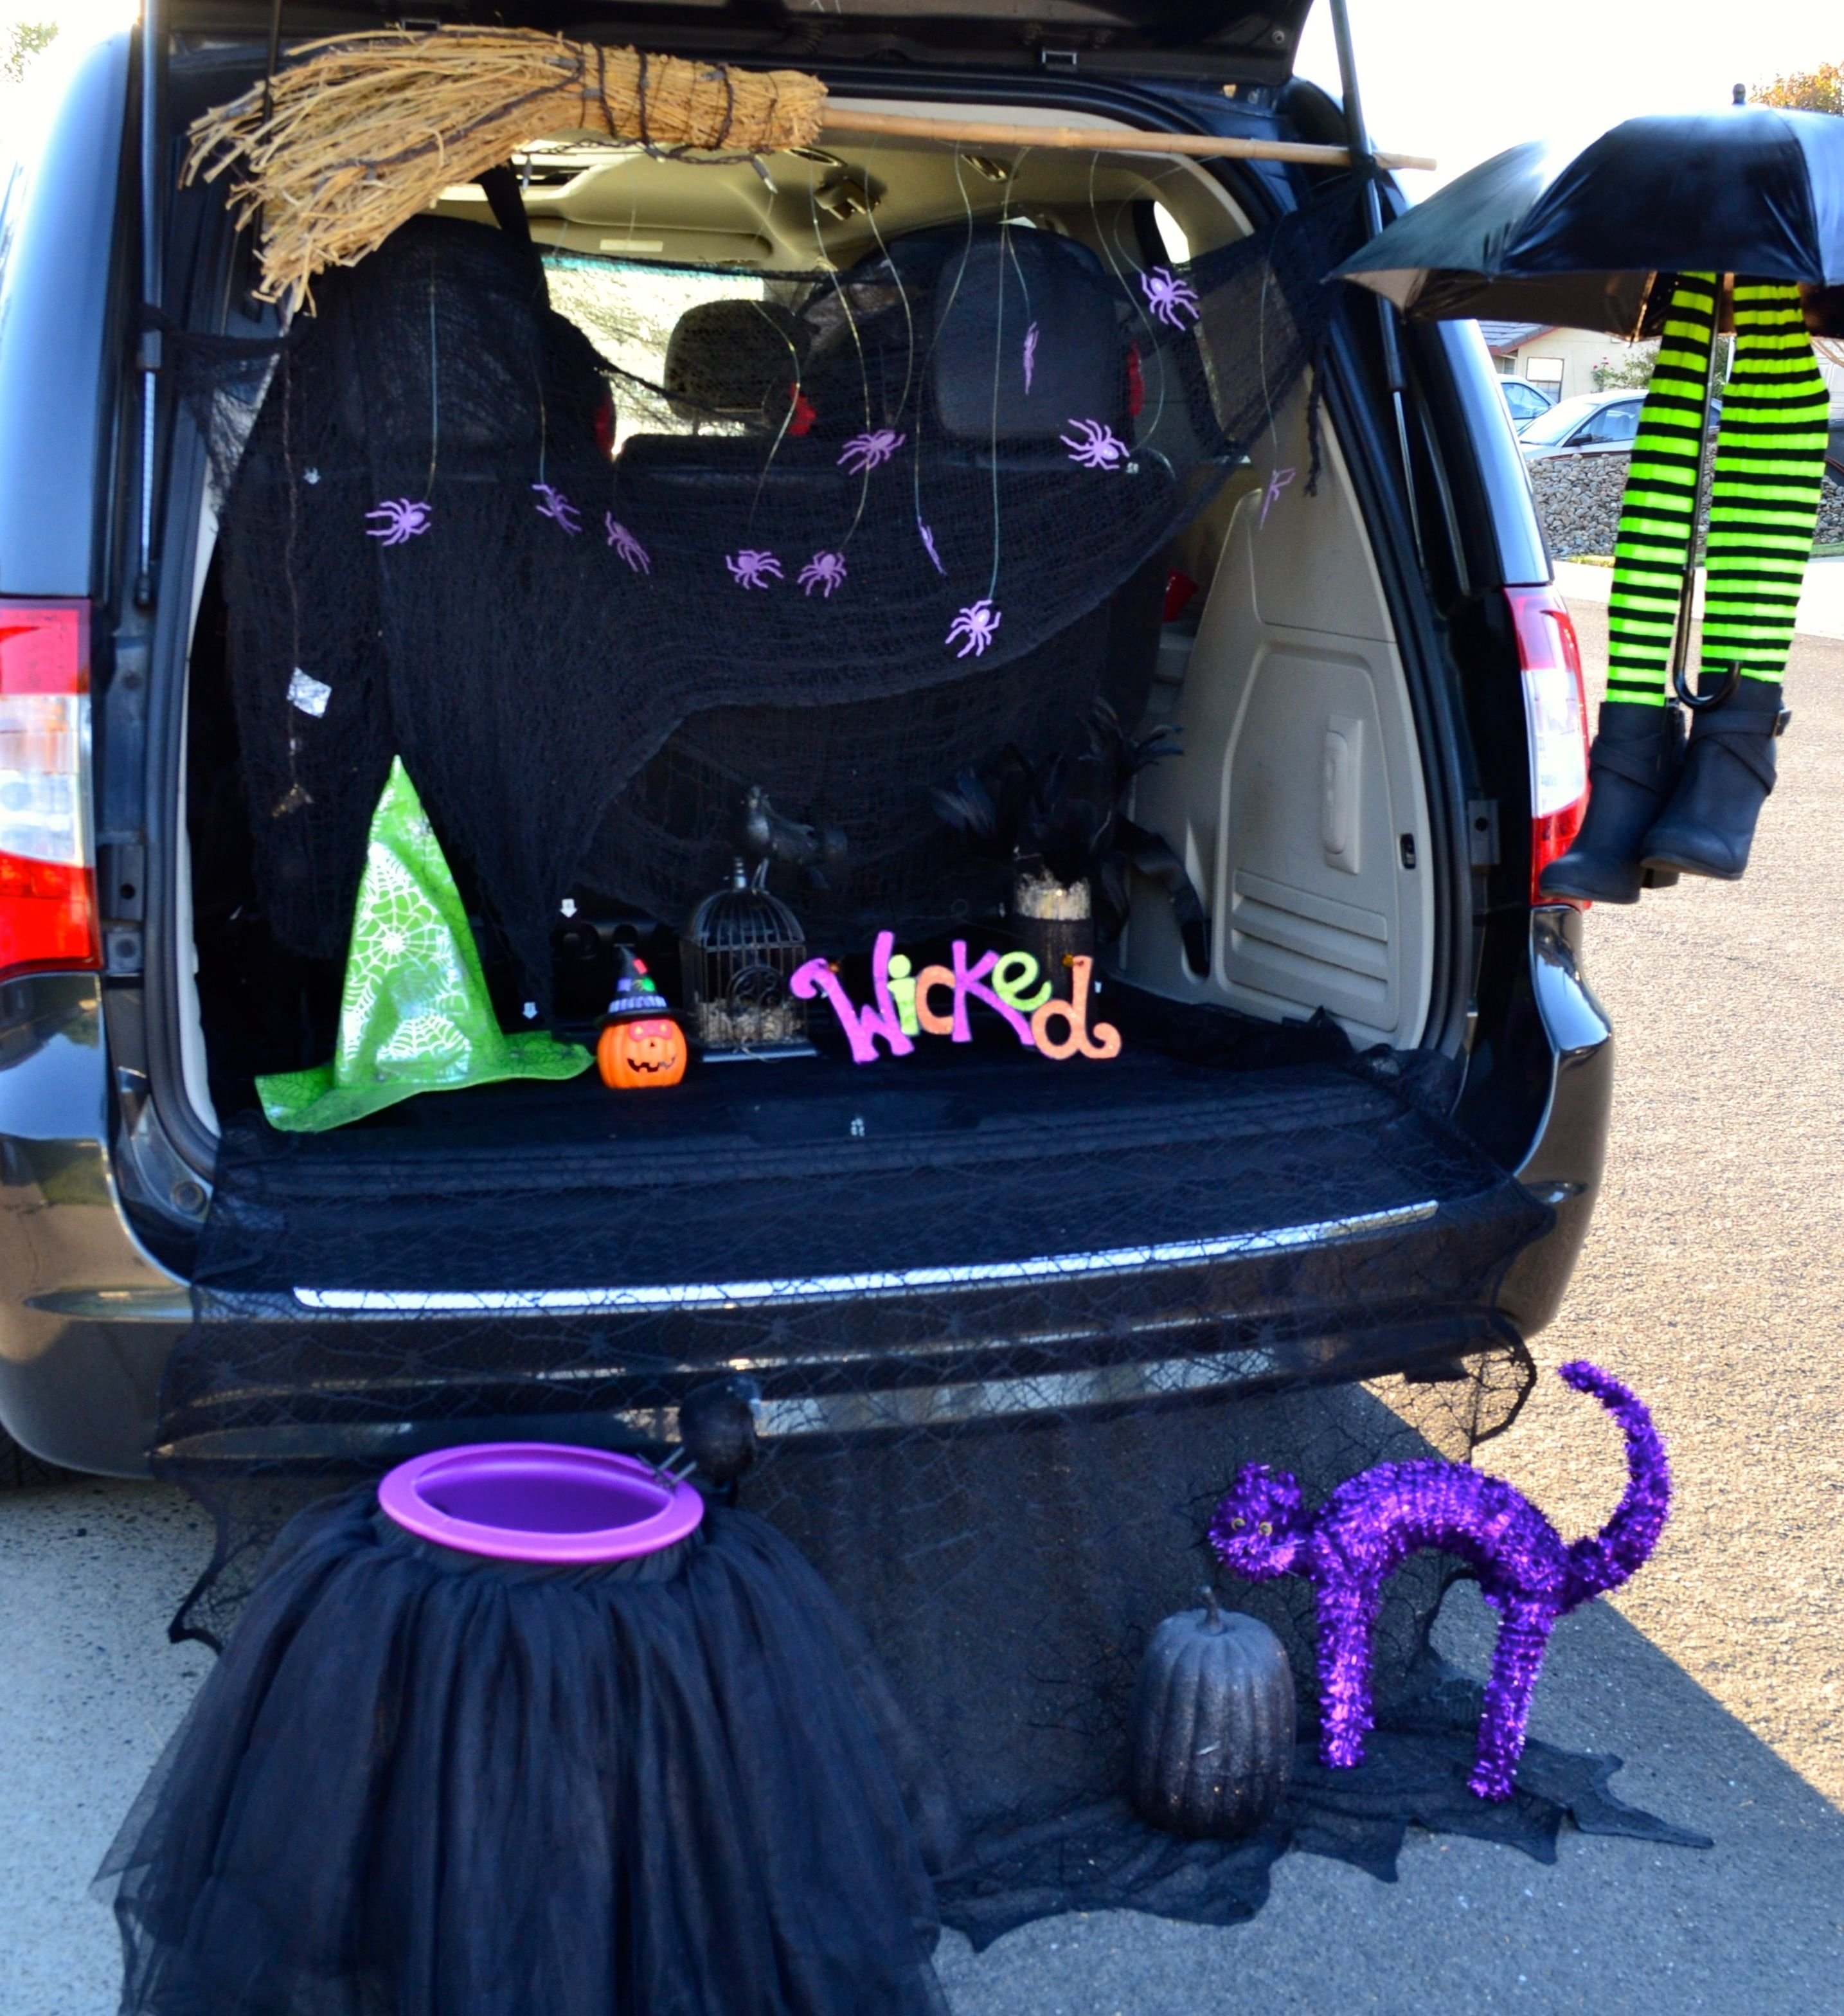 10 Cute Trunk And Treat Ideas For Decorating halloween trunk or treat decorating ideas mforum home design 2020